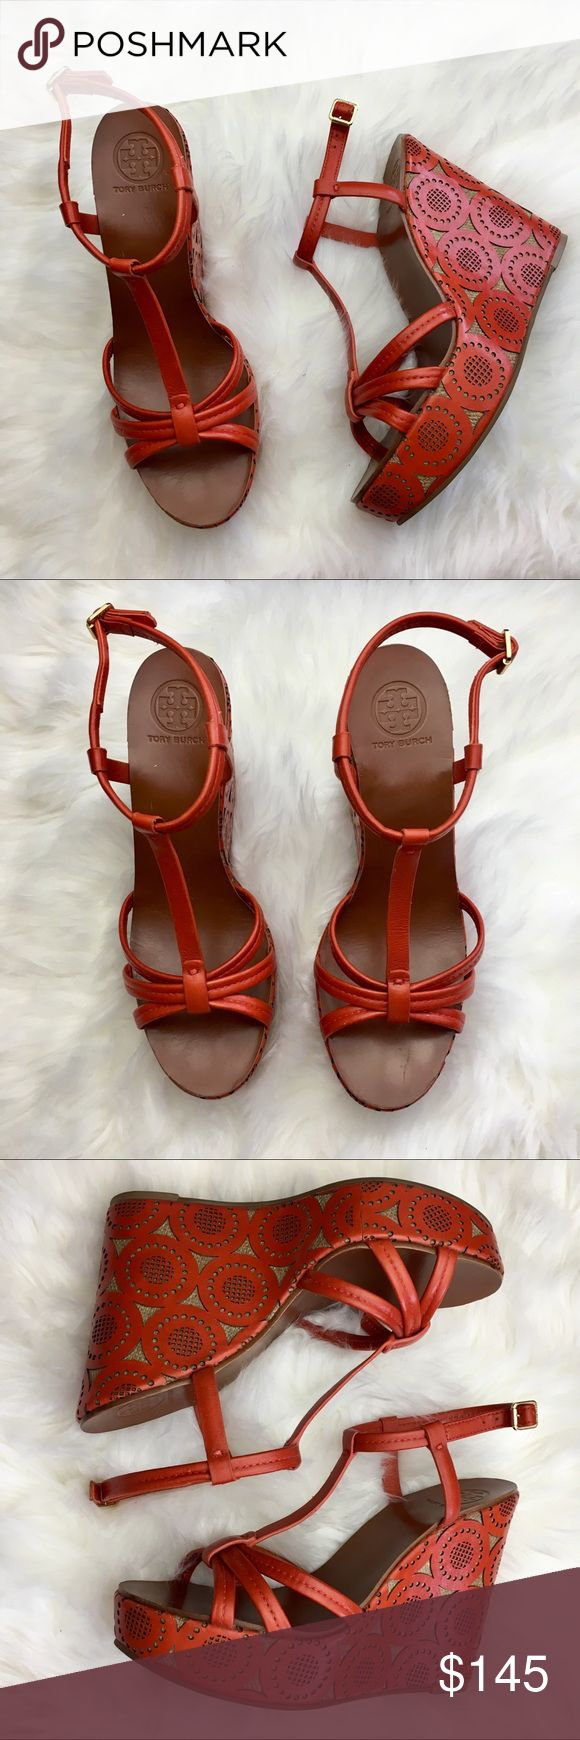 ✨Rare Tory Burch Orange Wedge Sandals✨ Gorgeous pre owned Tory Burch wedges, gently used, look like new. Size 10.5 run true to size,       Reasonable Offers Always Welcome ✨ Tory Burch Shoes Platforms